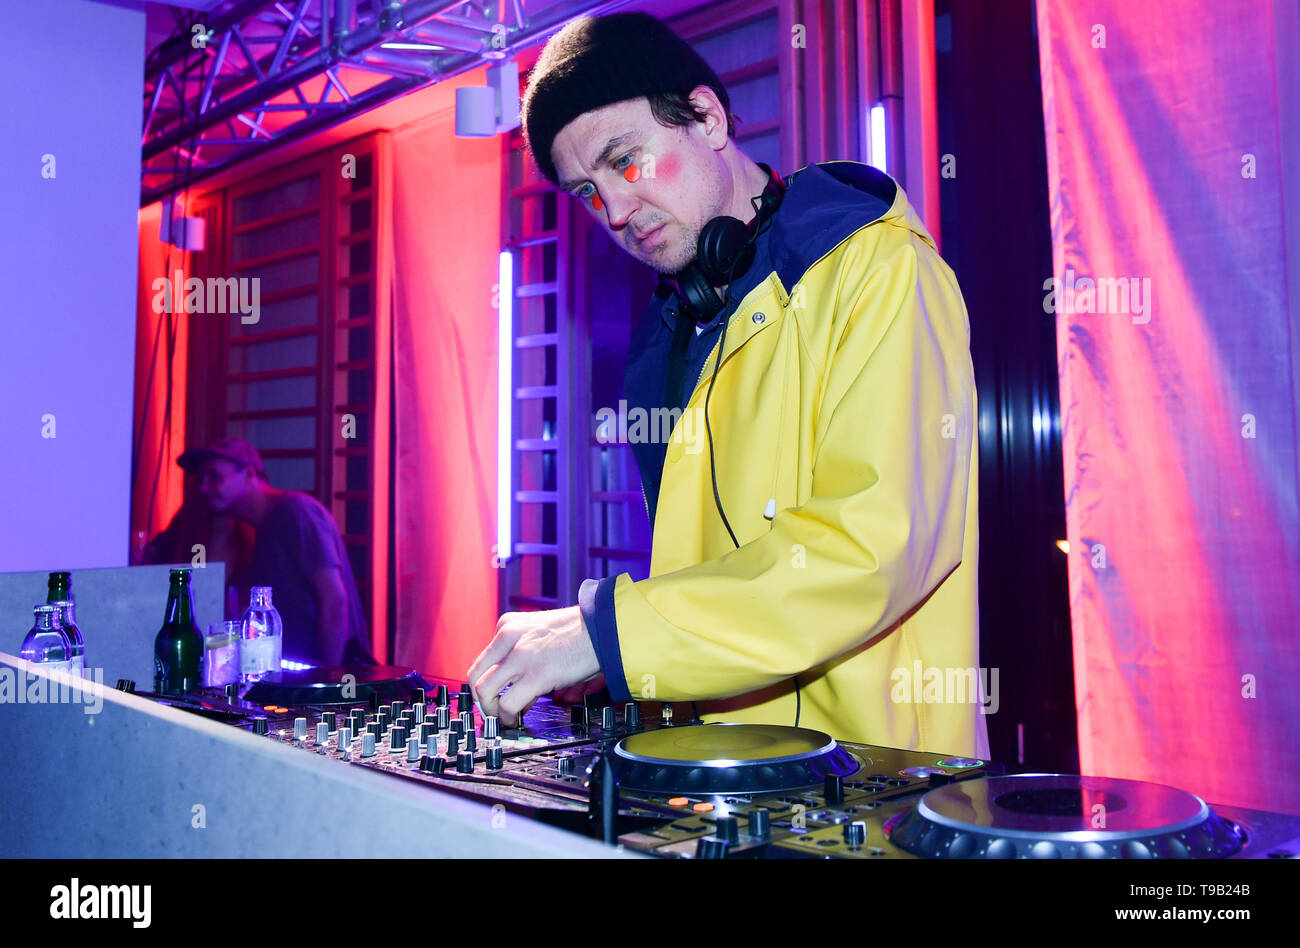 Berlin, Germany. 16th May, 2019. Actor Lars Eidinger DJs the opening of the John & Janes Soulbase Yoga, Pilates and Barre Studios at the party with glued-on dots and red cheeks. The boutique fitness concept combines the international sports trends of yoga, Pilates and barre with other fitness elements. Credit: Jens Kalaene/dpa-Zentralbild/ZB/dpa/Alamy Live News - Stock Image